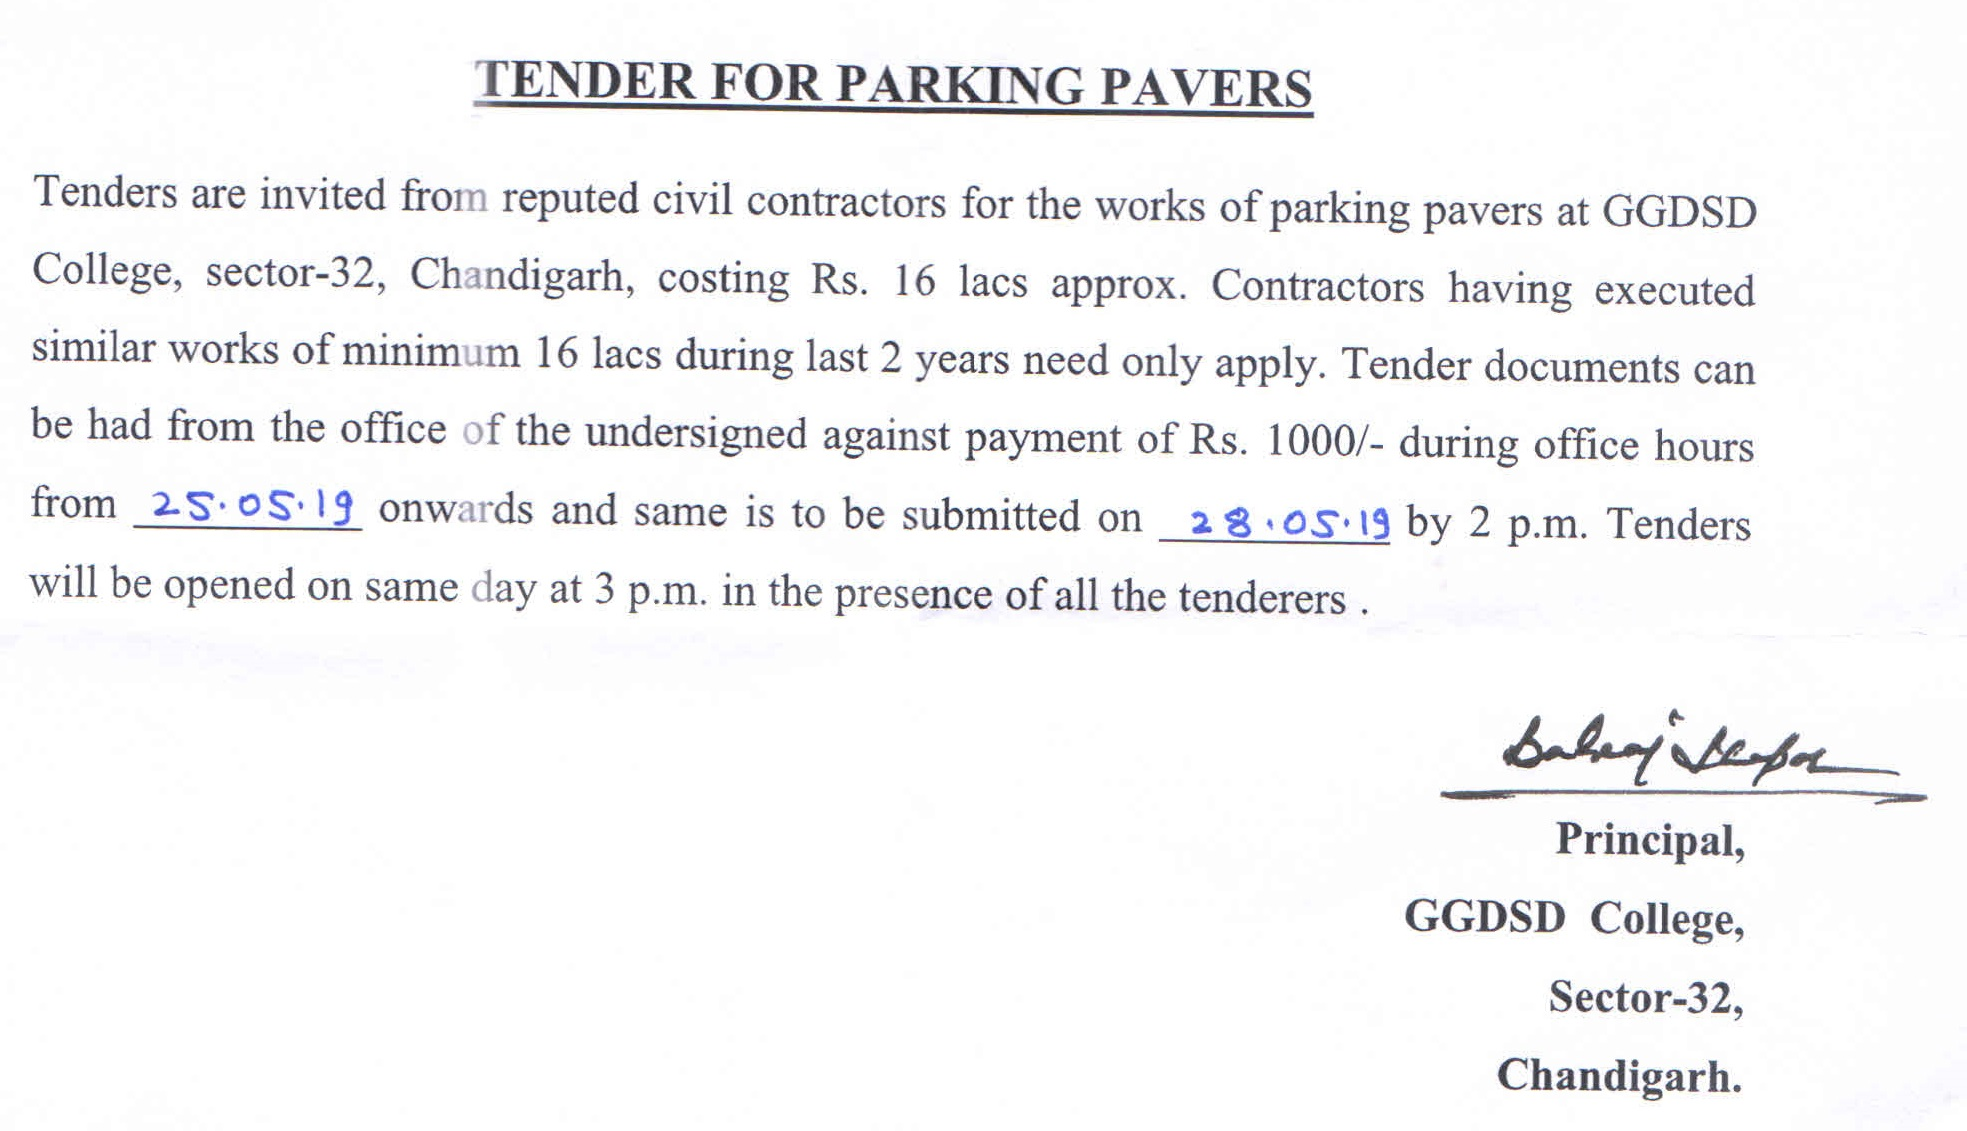 Tender for Parking Pavers